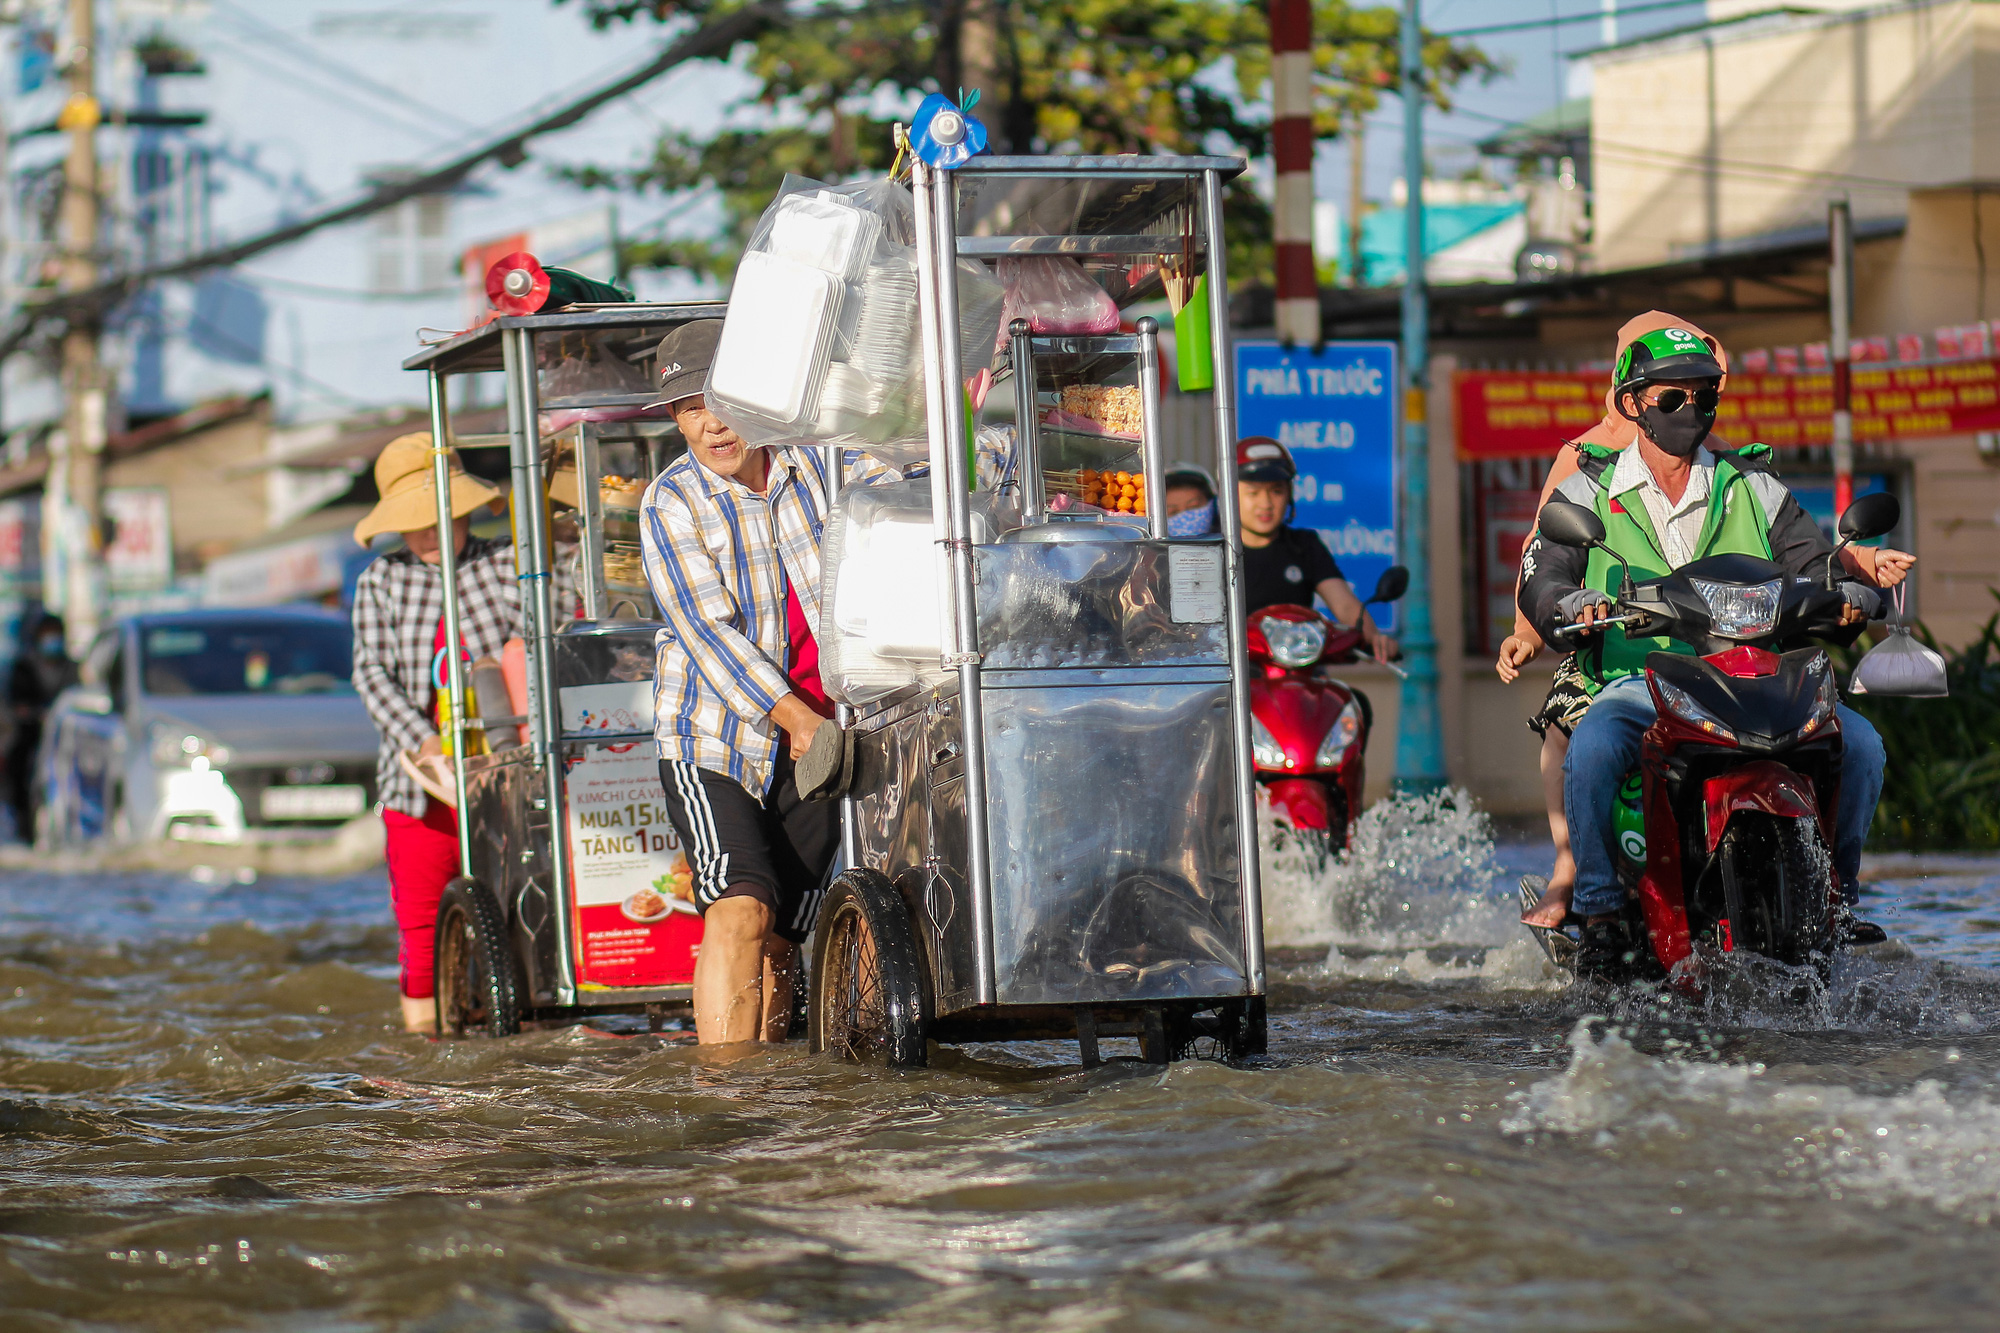 People travel on flooded Tran Xuan Soan Street in District 7, Ho Chi Minh City, November 15, 2020. Photo: Chau Tuan / Tuoi Tre